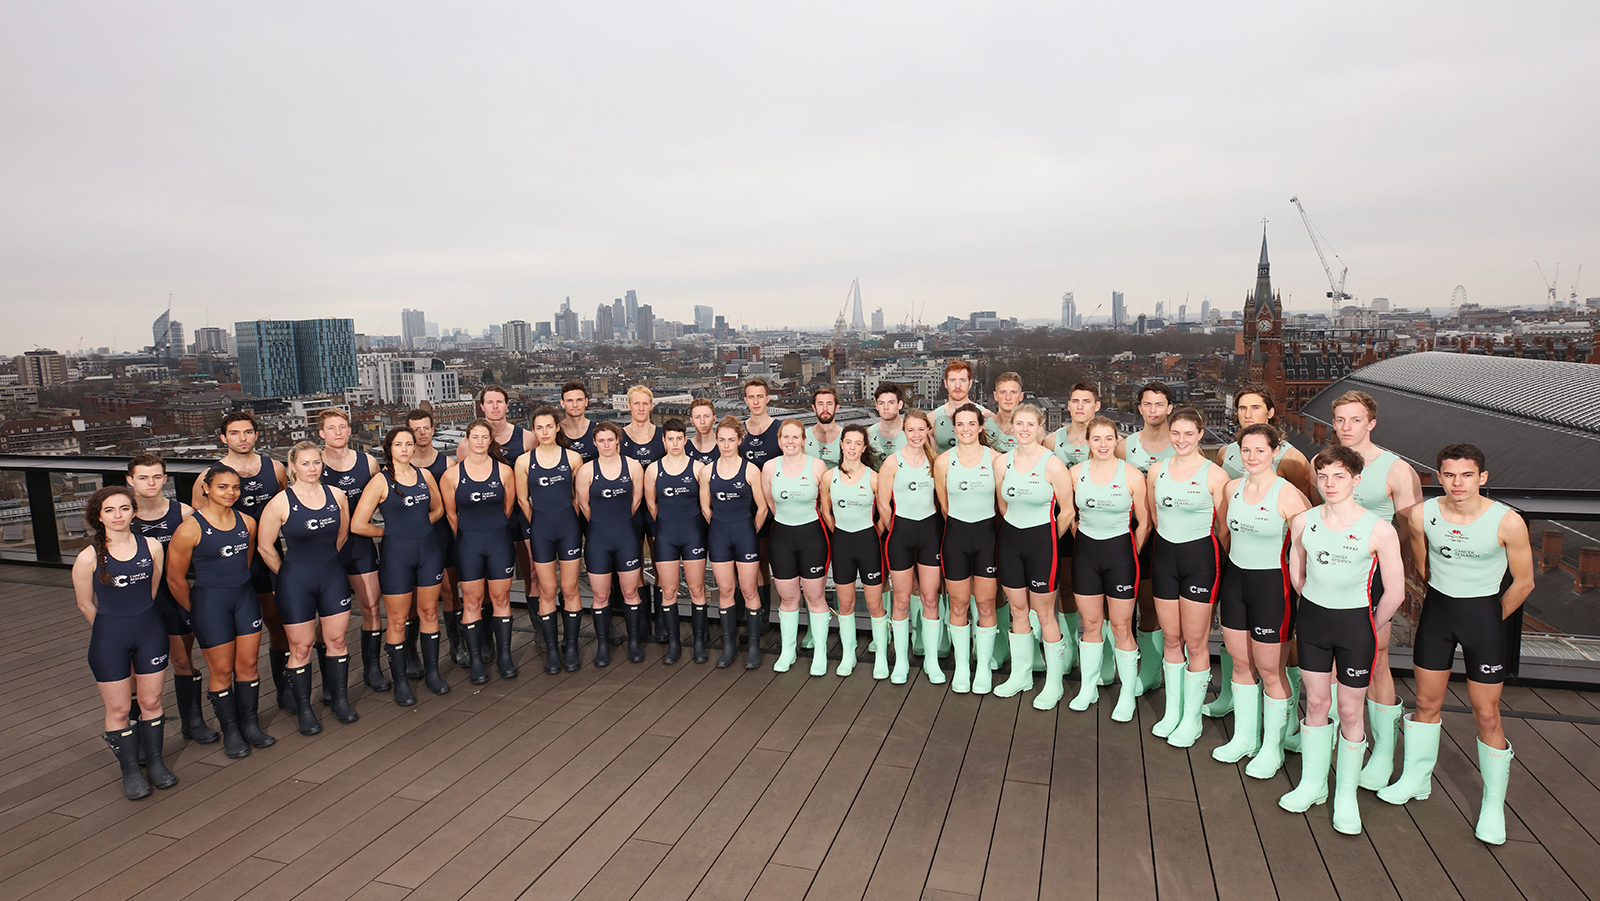 Meet The 2017 Boat Races Crews British Rowing